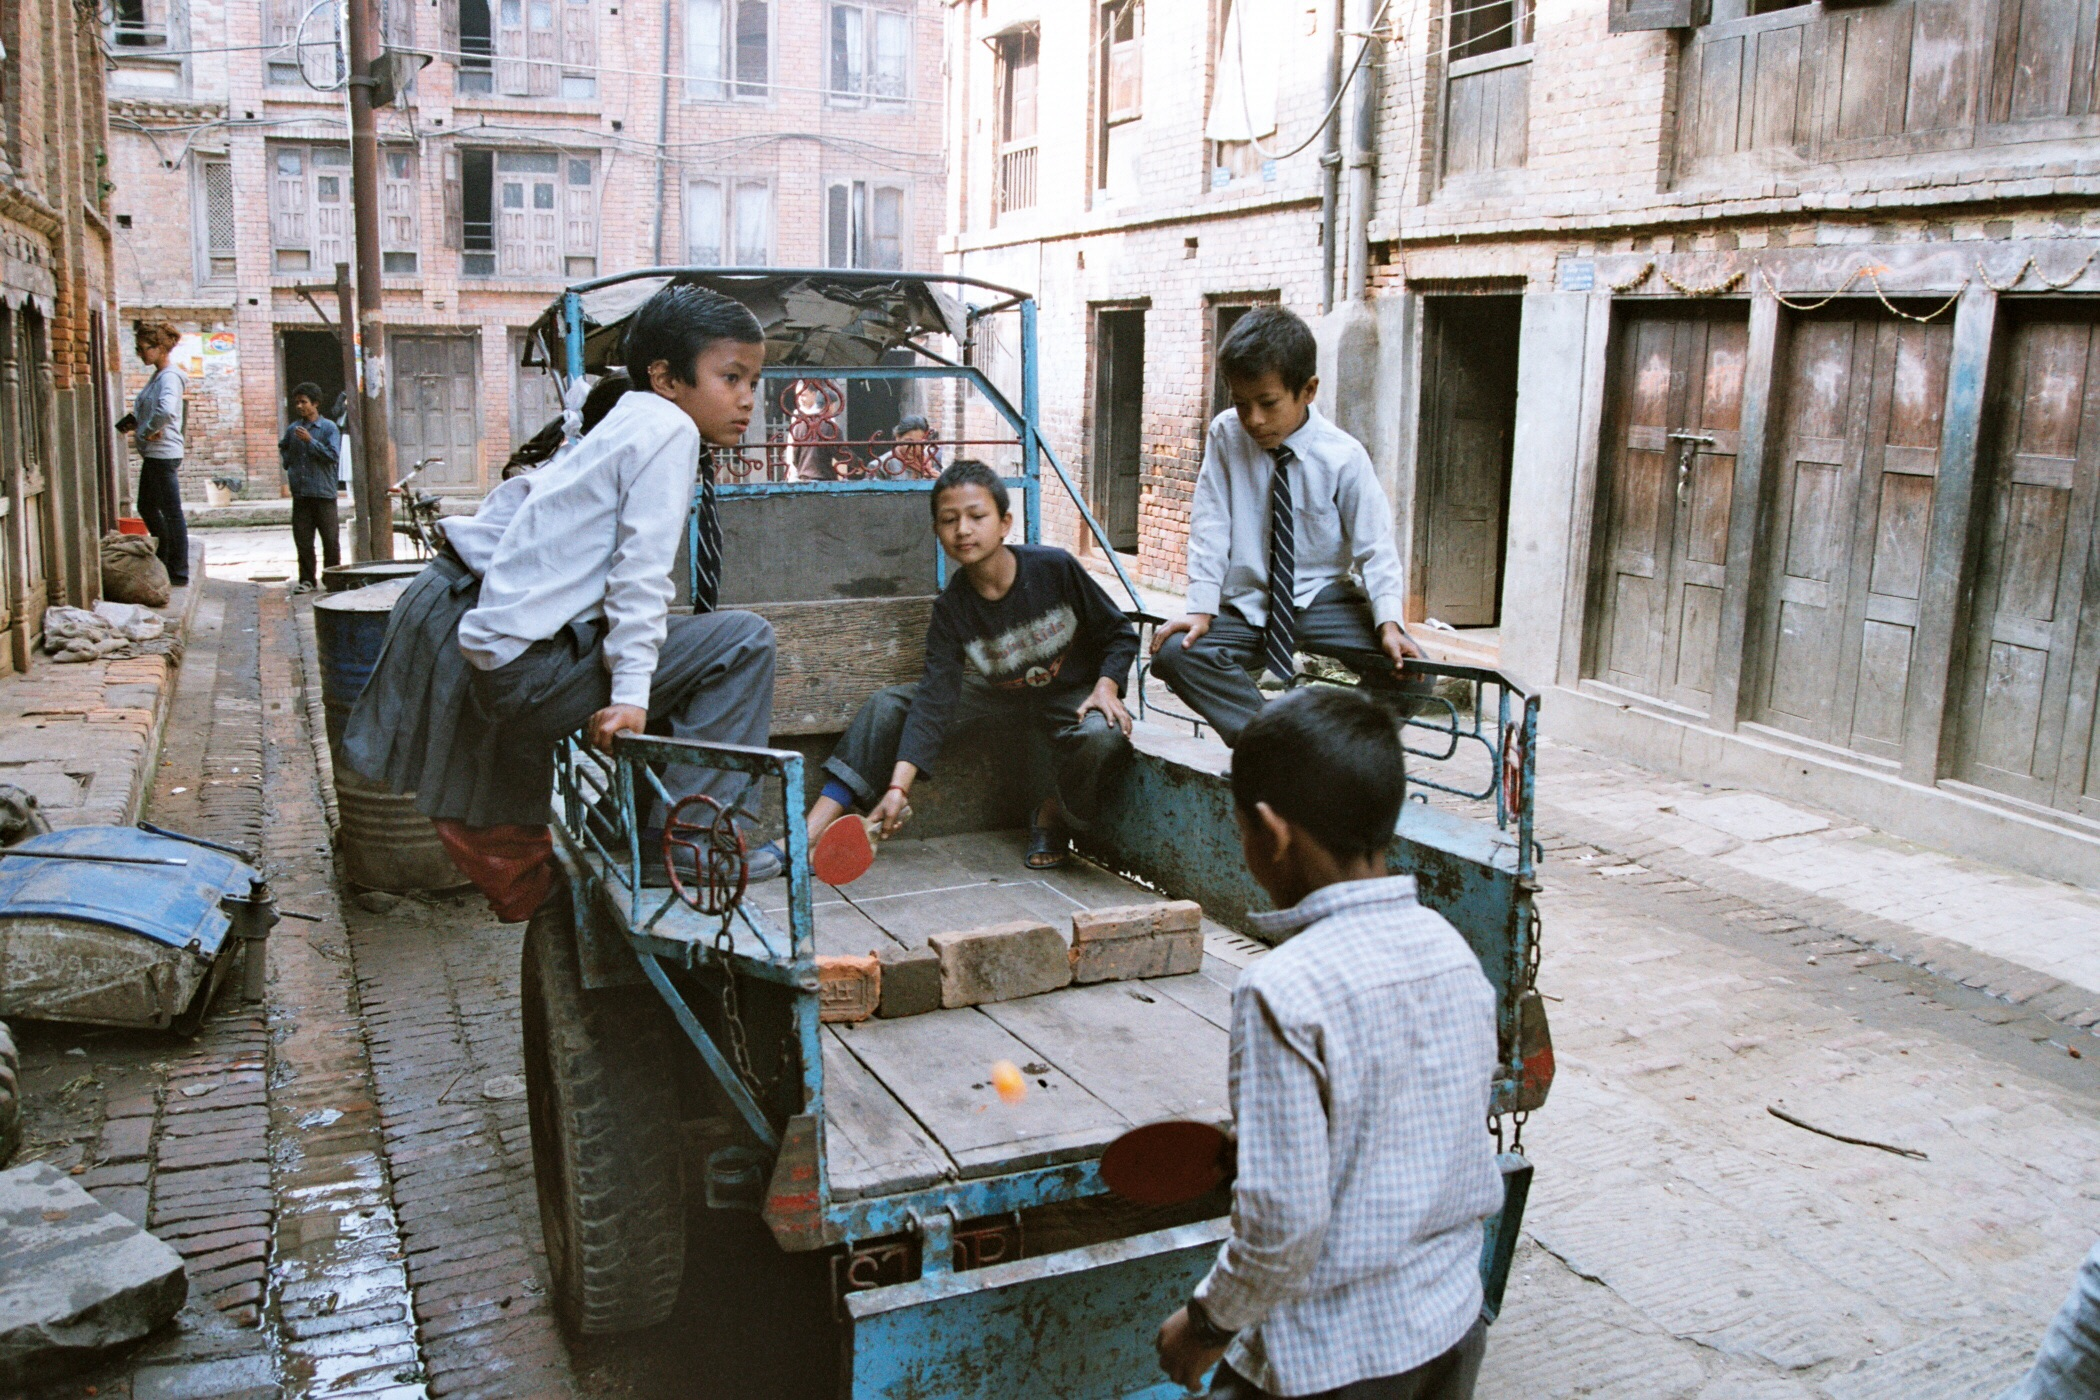 Ping pong in Nepal...